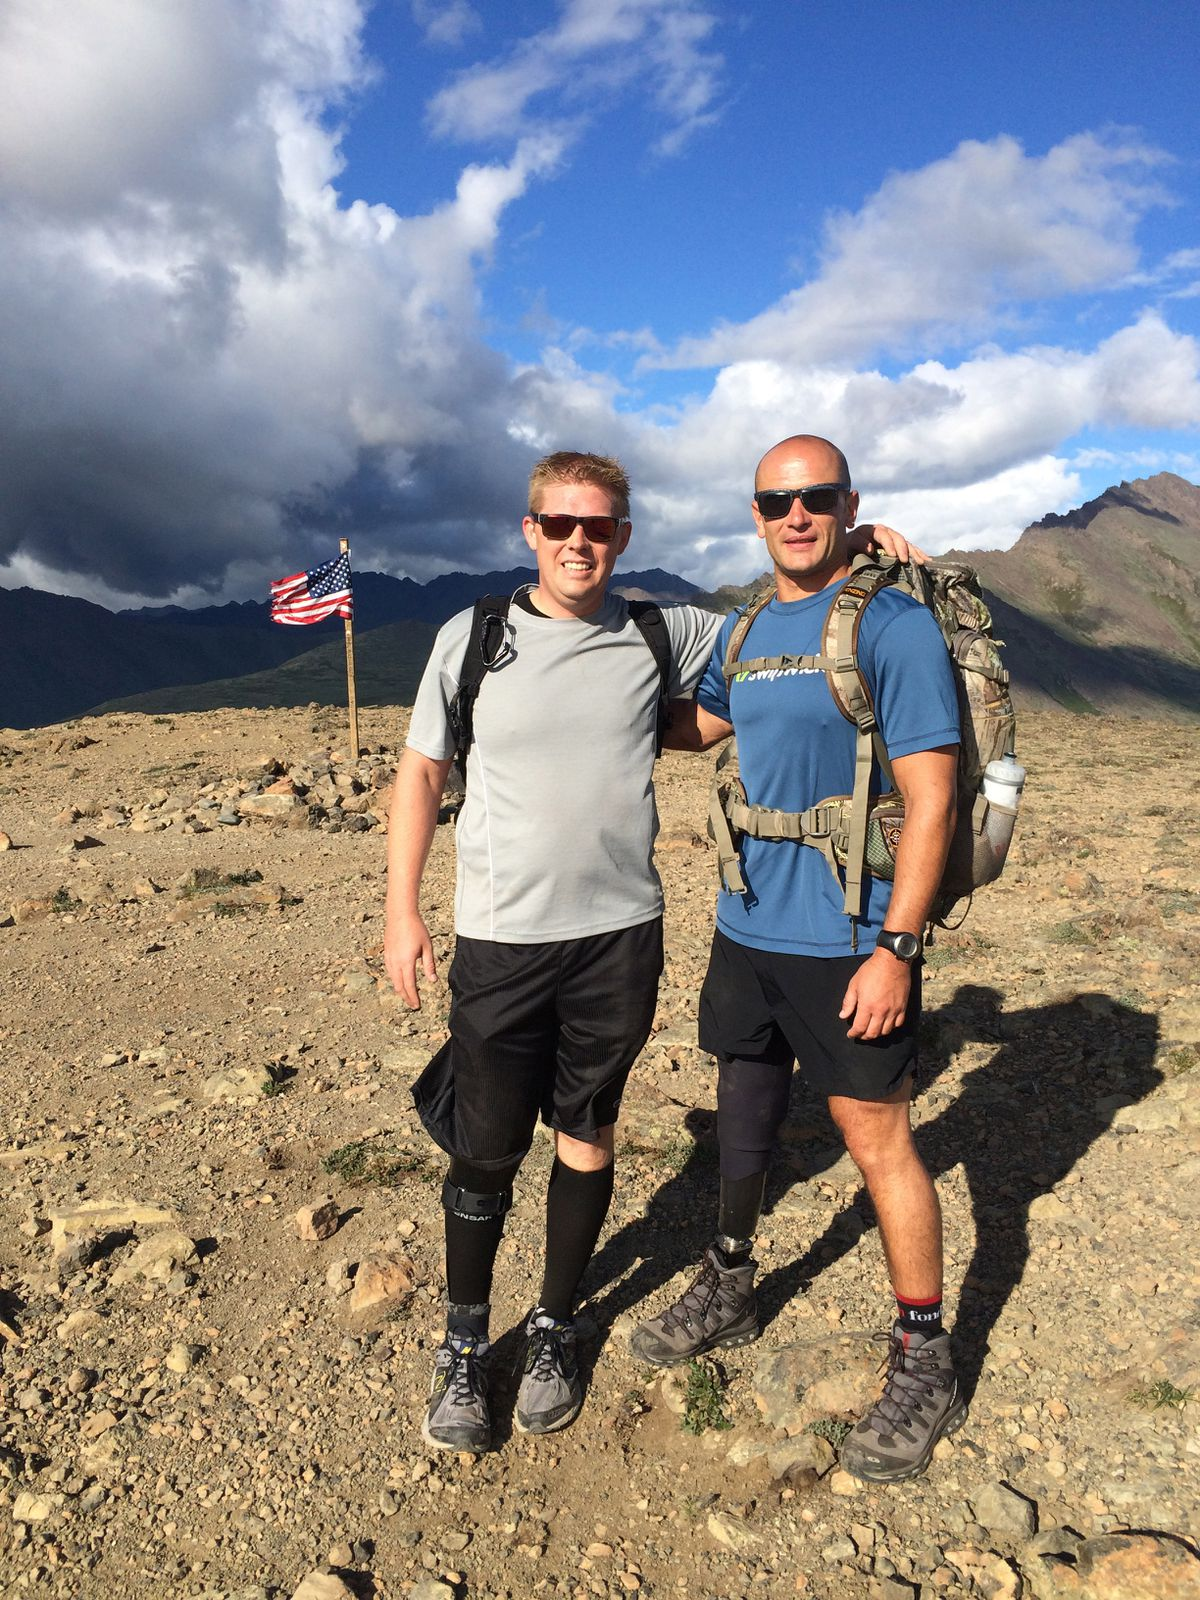 "Josh Revak, left, stands with Joe Kapacziewski on top of Flattop last summer, about a month after Revak was fitted with a prostethic device for his right foot. Kapacziewski is an Army Ranger who is still active duty despite losing his leg in combat. ""He has been a huge inspiration to me,"" Revak said. (Photo courtesy of Josh Revak)"